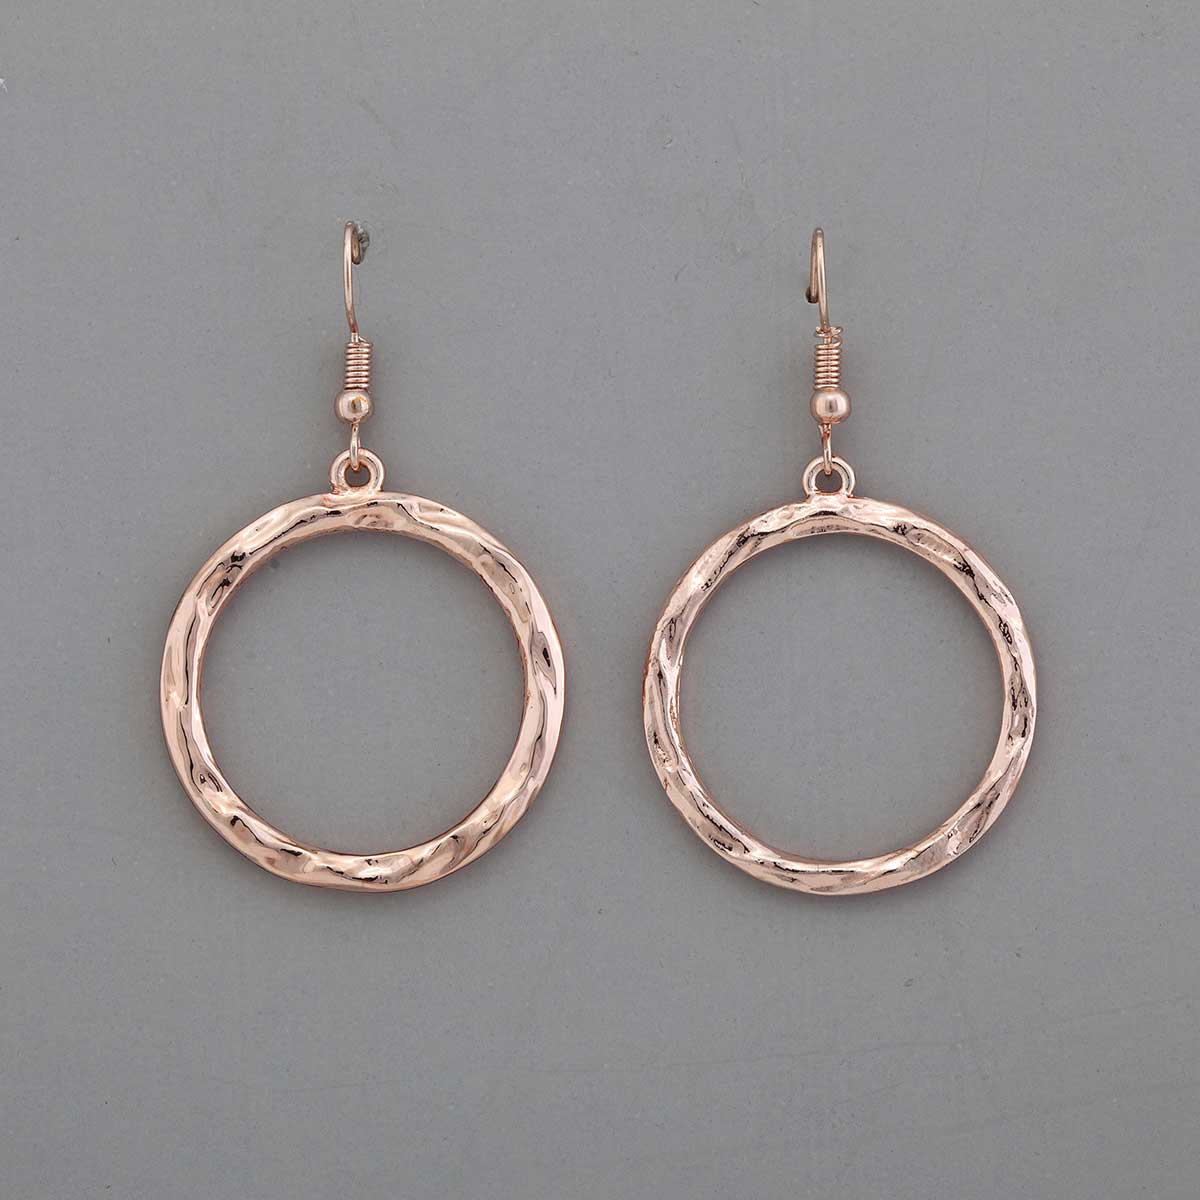 "Rose Gold 1.25""x1.25"" Hoop French Wire Earrings"